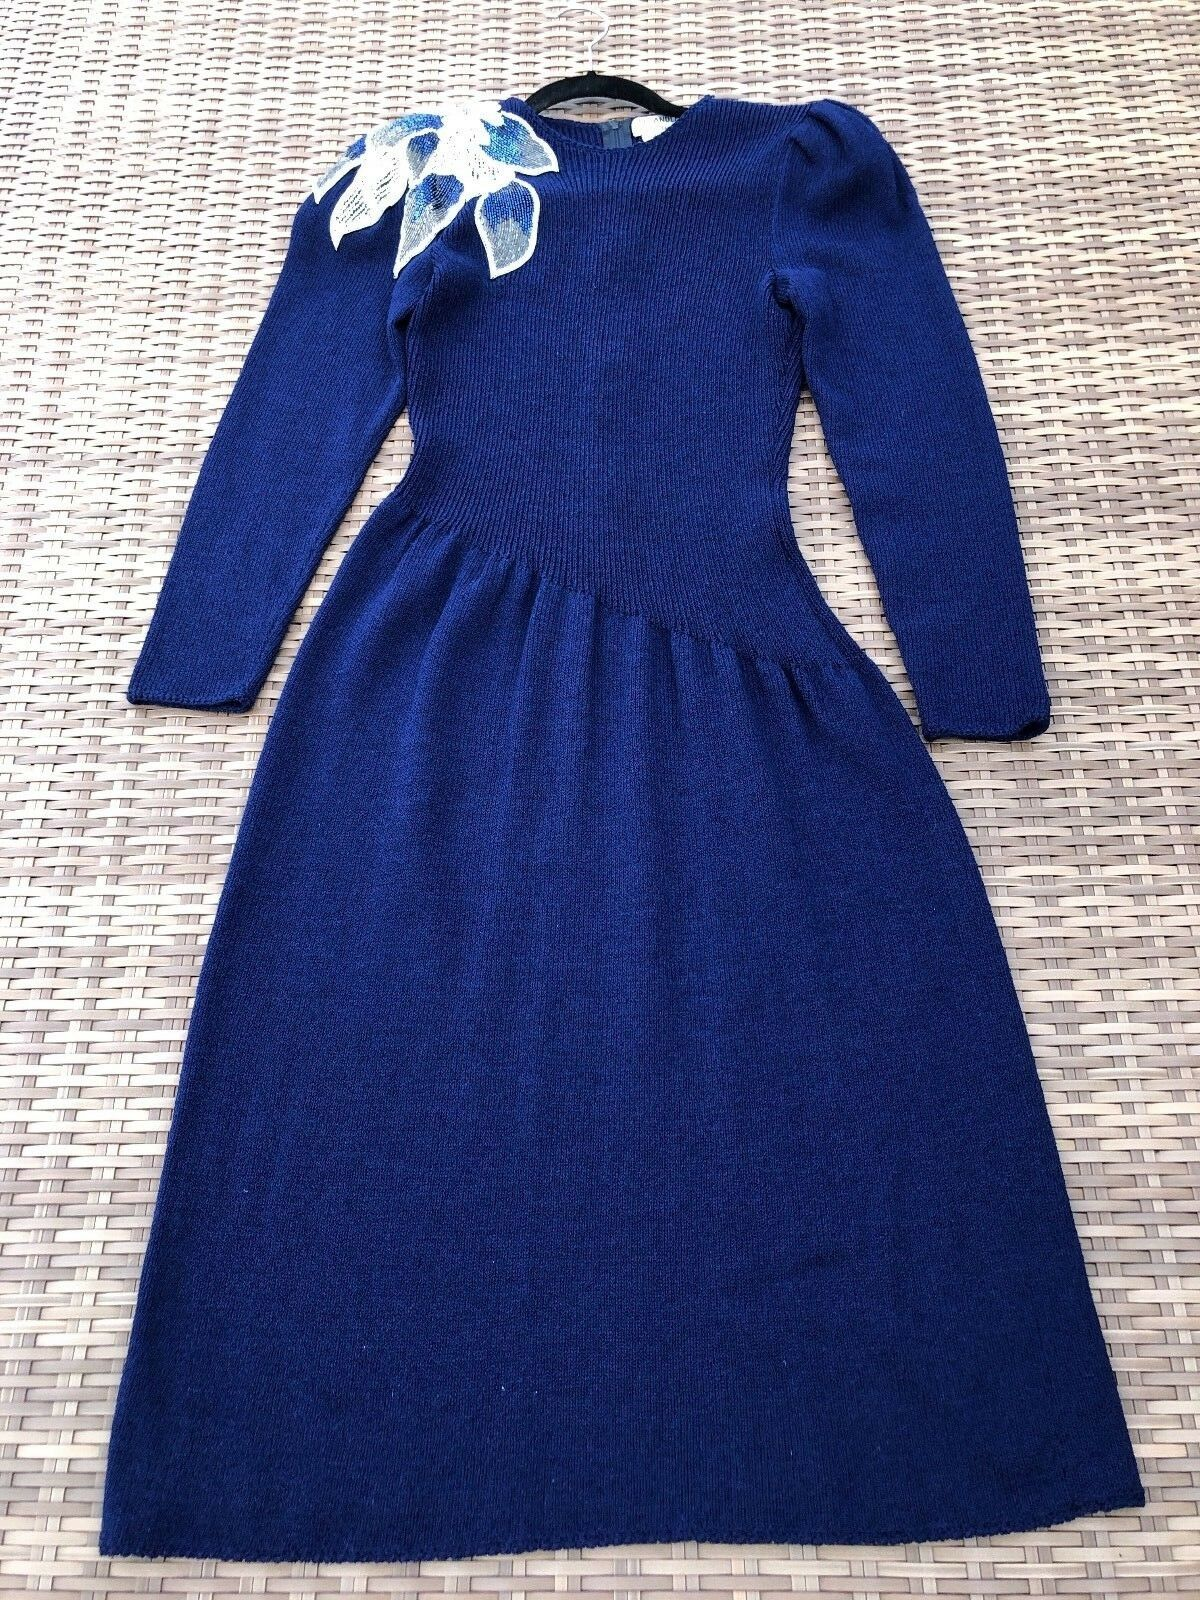 VINTAGE Pat Sandler Wellmore Size 8 blueE Sweater Dress w  Beading SALE PRICE